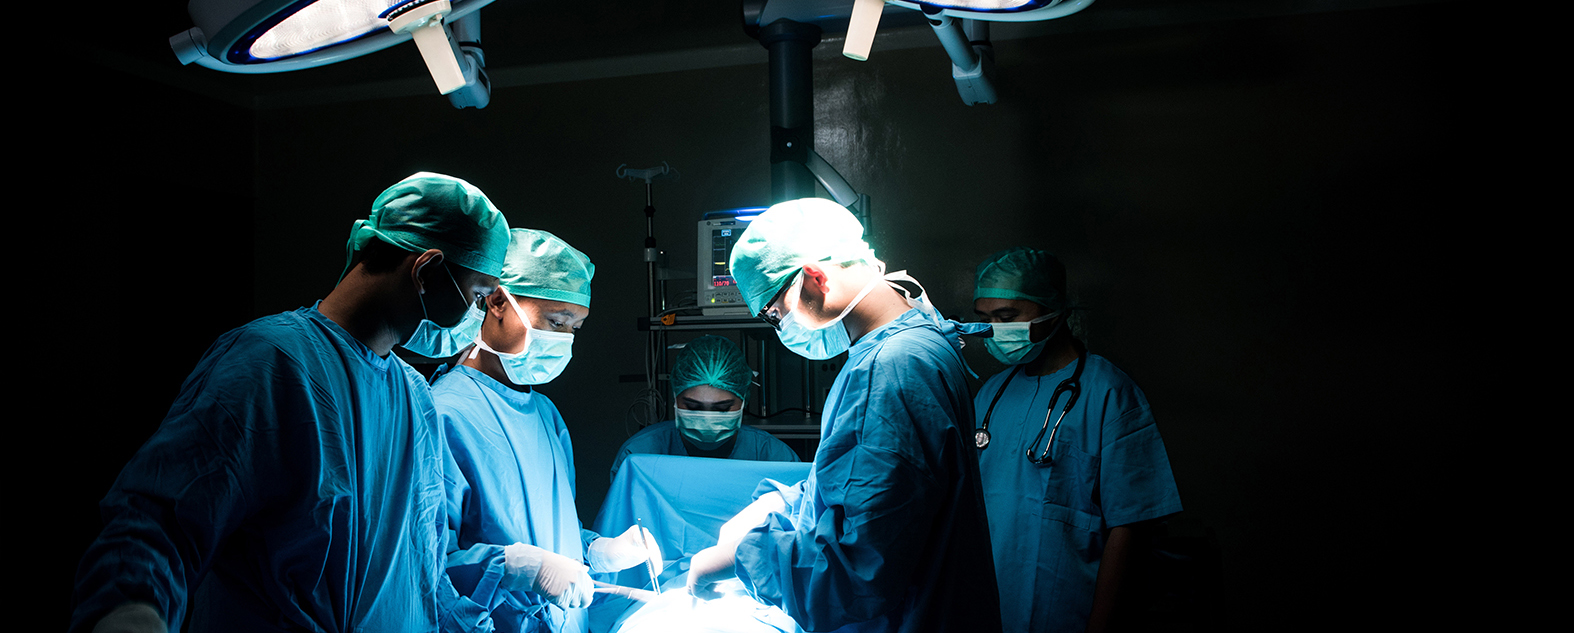 Medical Team Performing Surgical Operation in Modern Operating R